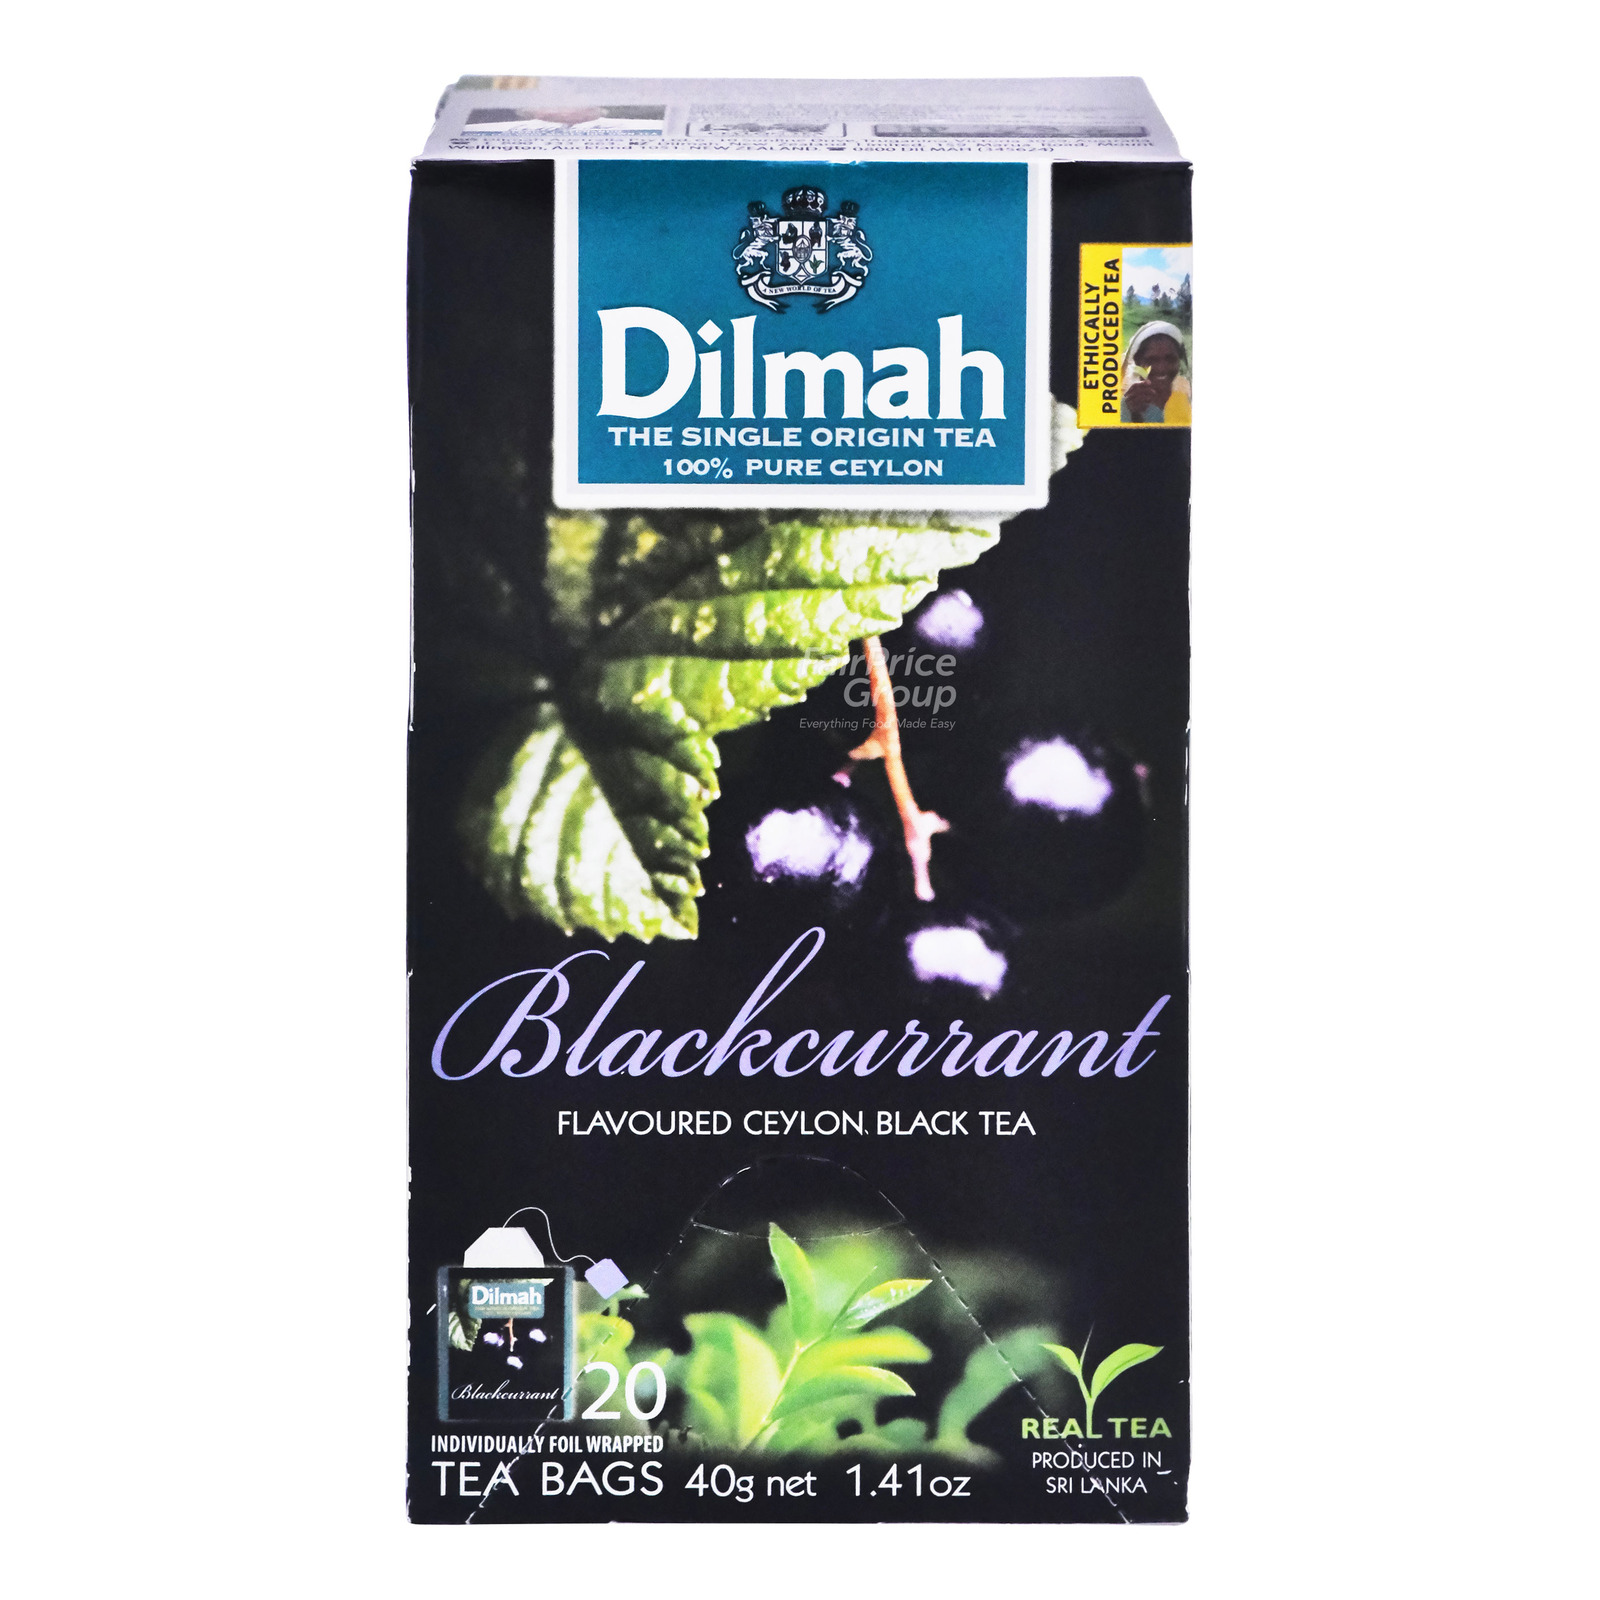 DILMAH Tea Bags - Blackcurrant Flavoured Ceylon BLack Tea 20sX2g